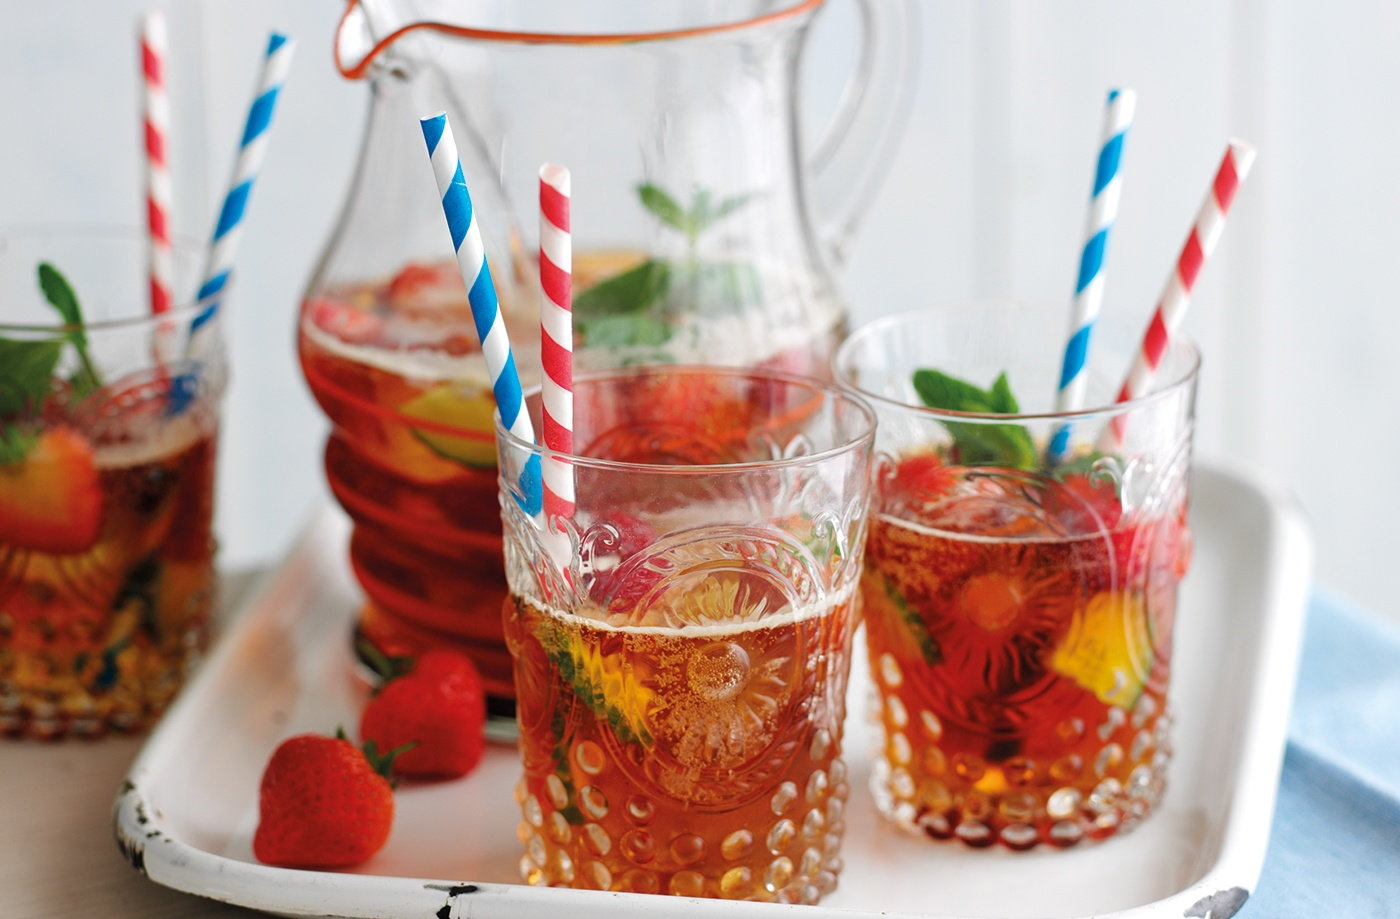 Very berry Pimm's recipe